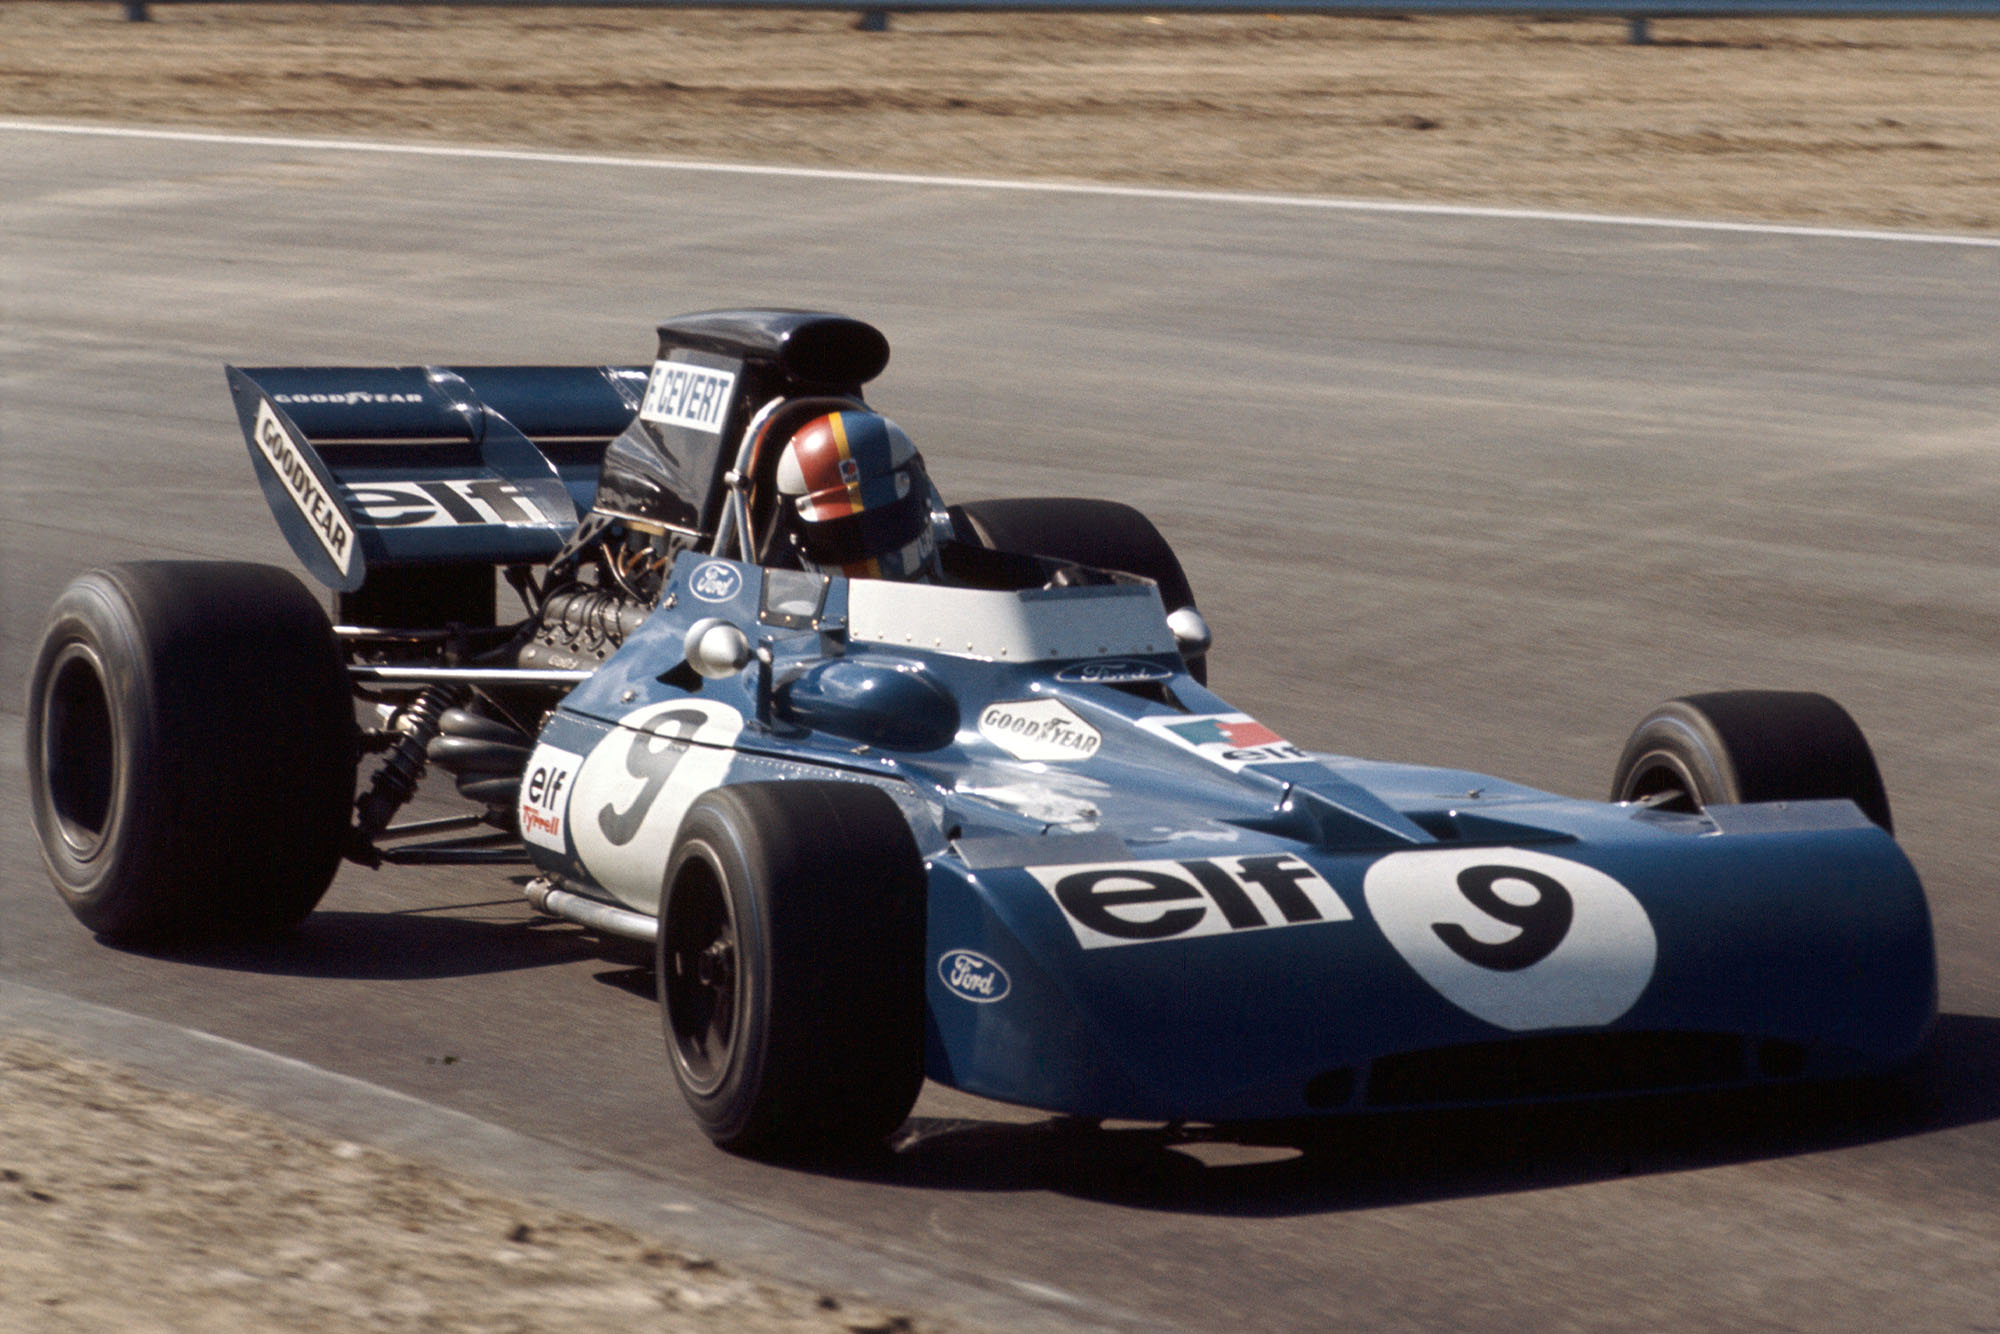 Francois Cevert driving for Tyrrell at the 1971 United States Grand Prix.